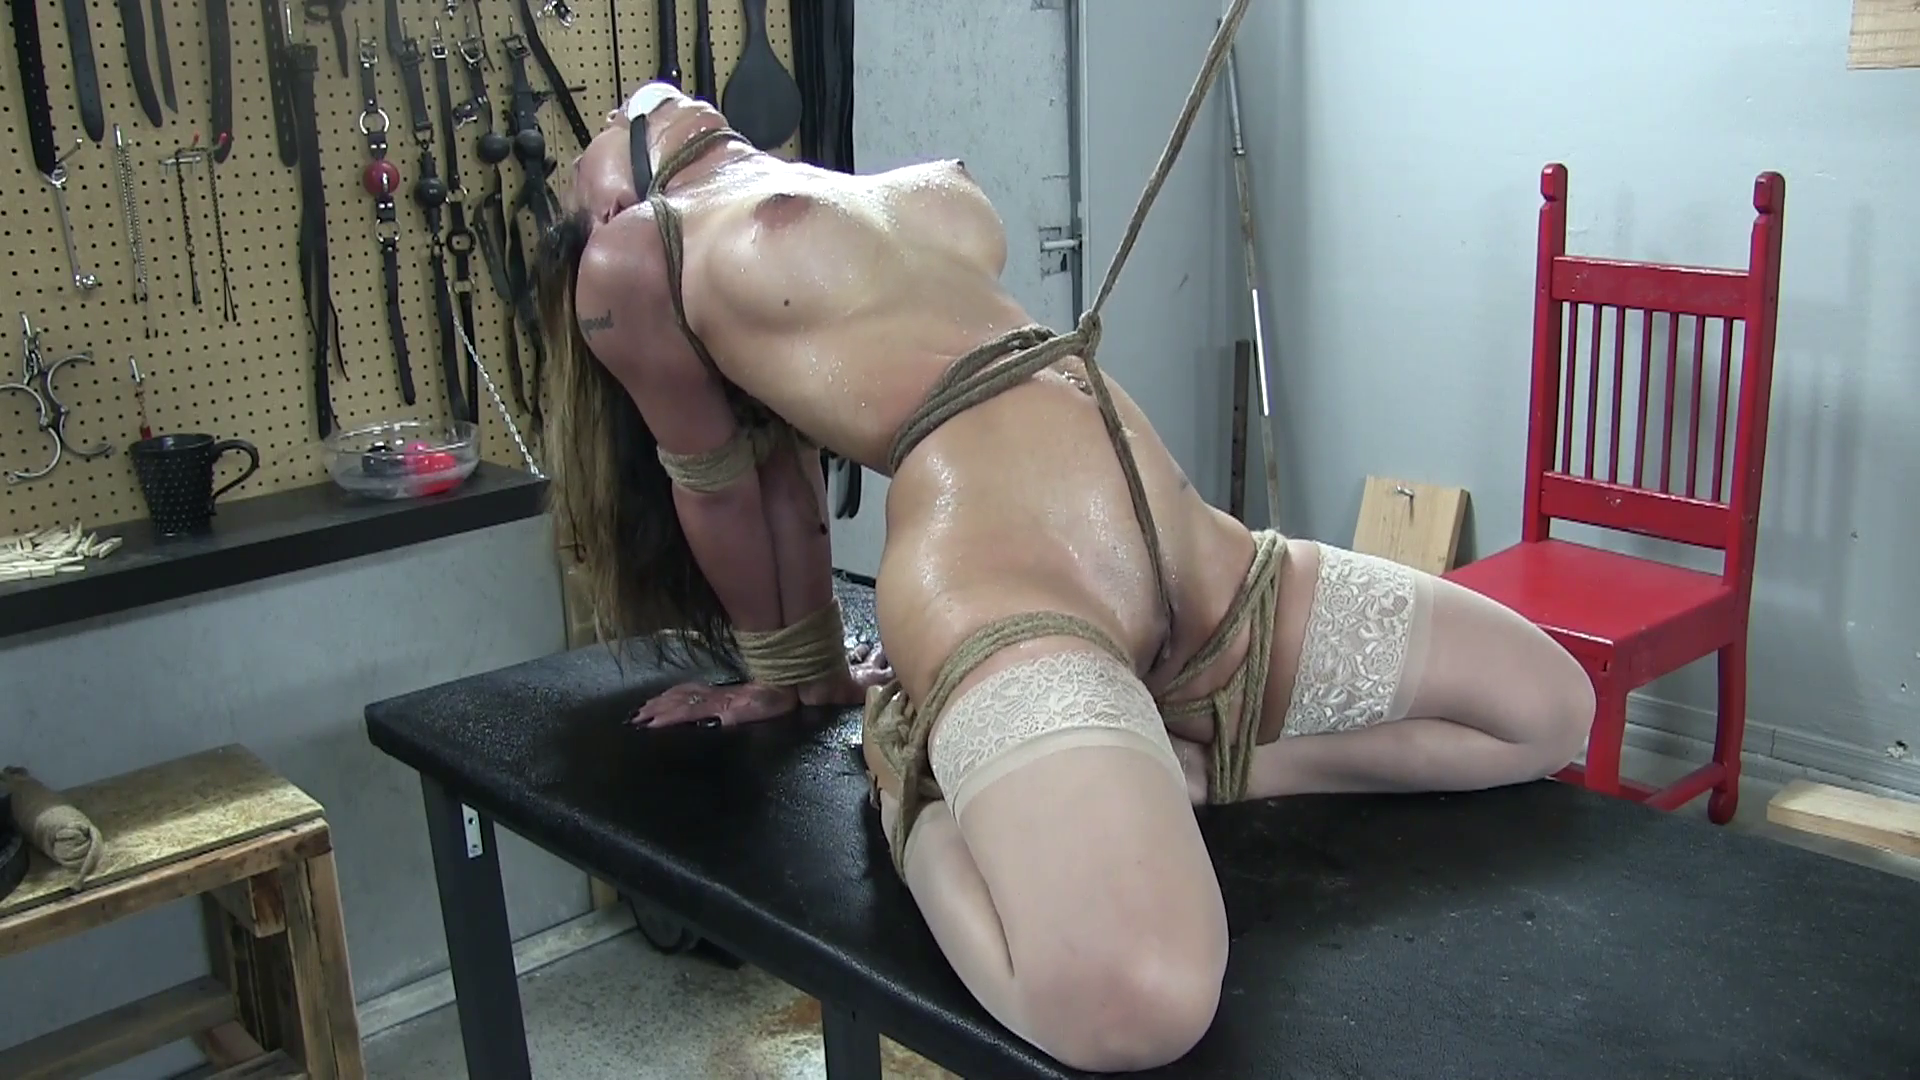 The matchless bondage stories predicament sex above told the